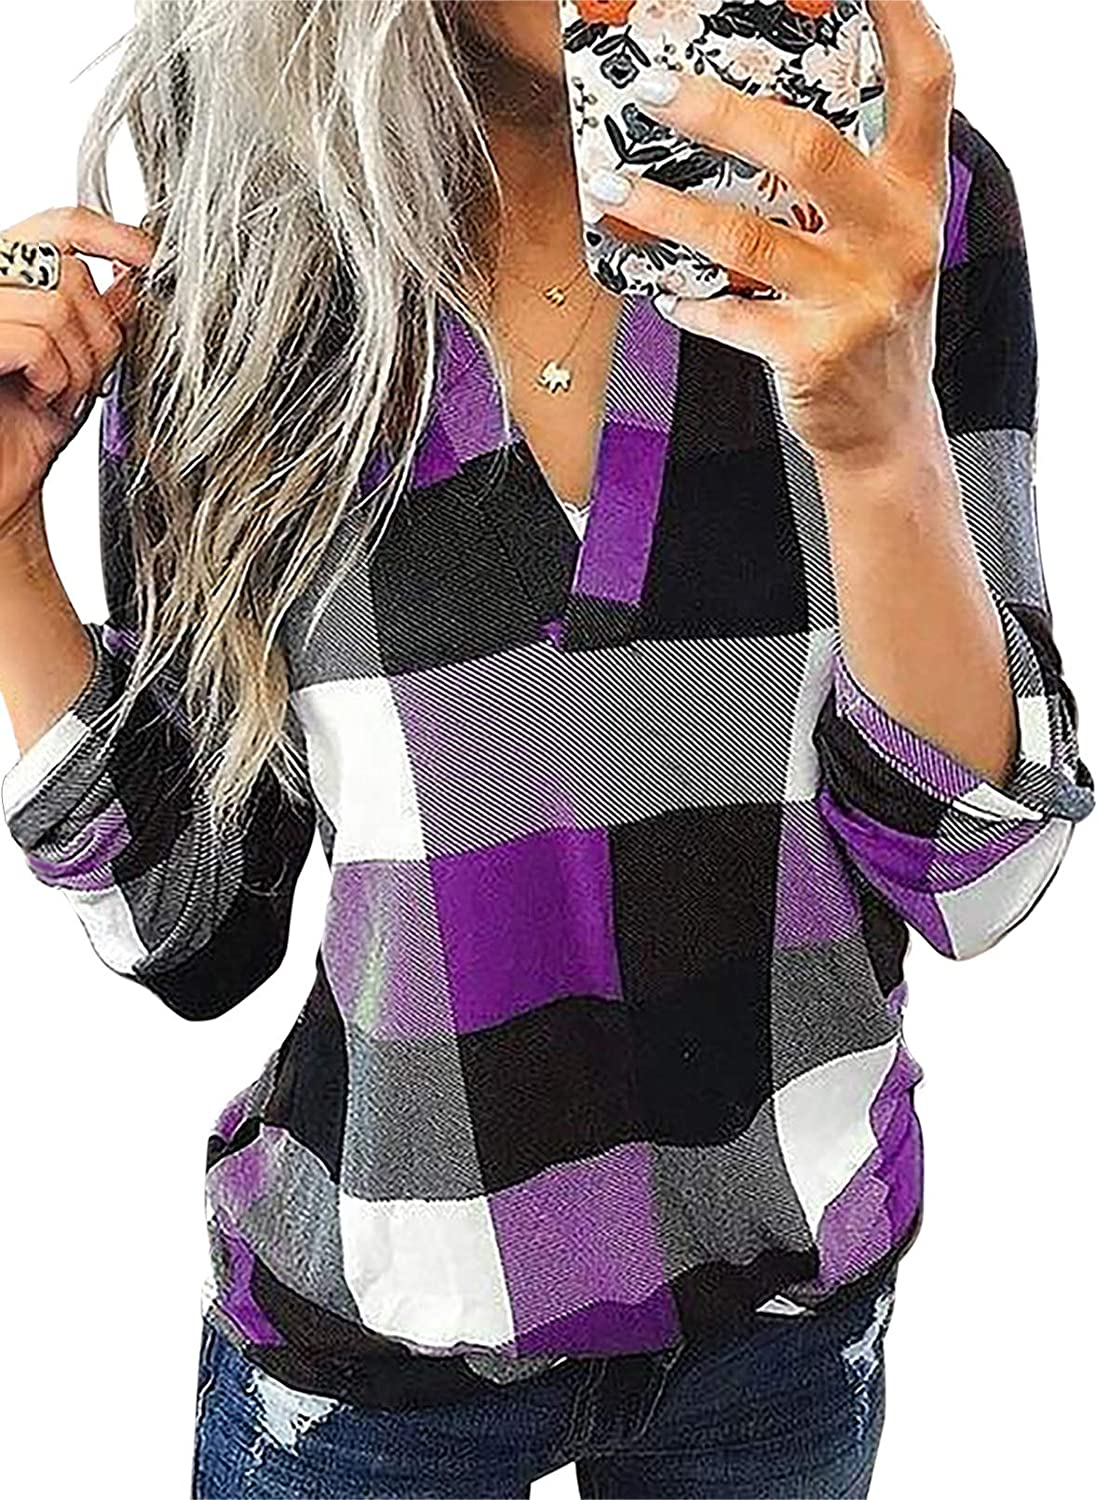 Astylish Womens Casual V Neck Cuffed Sleeves Plaid Shirts Blouses Top